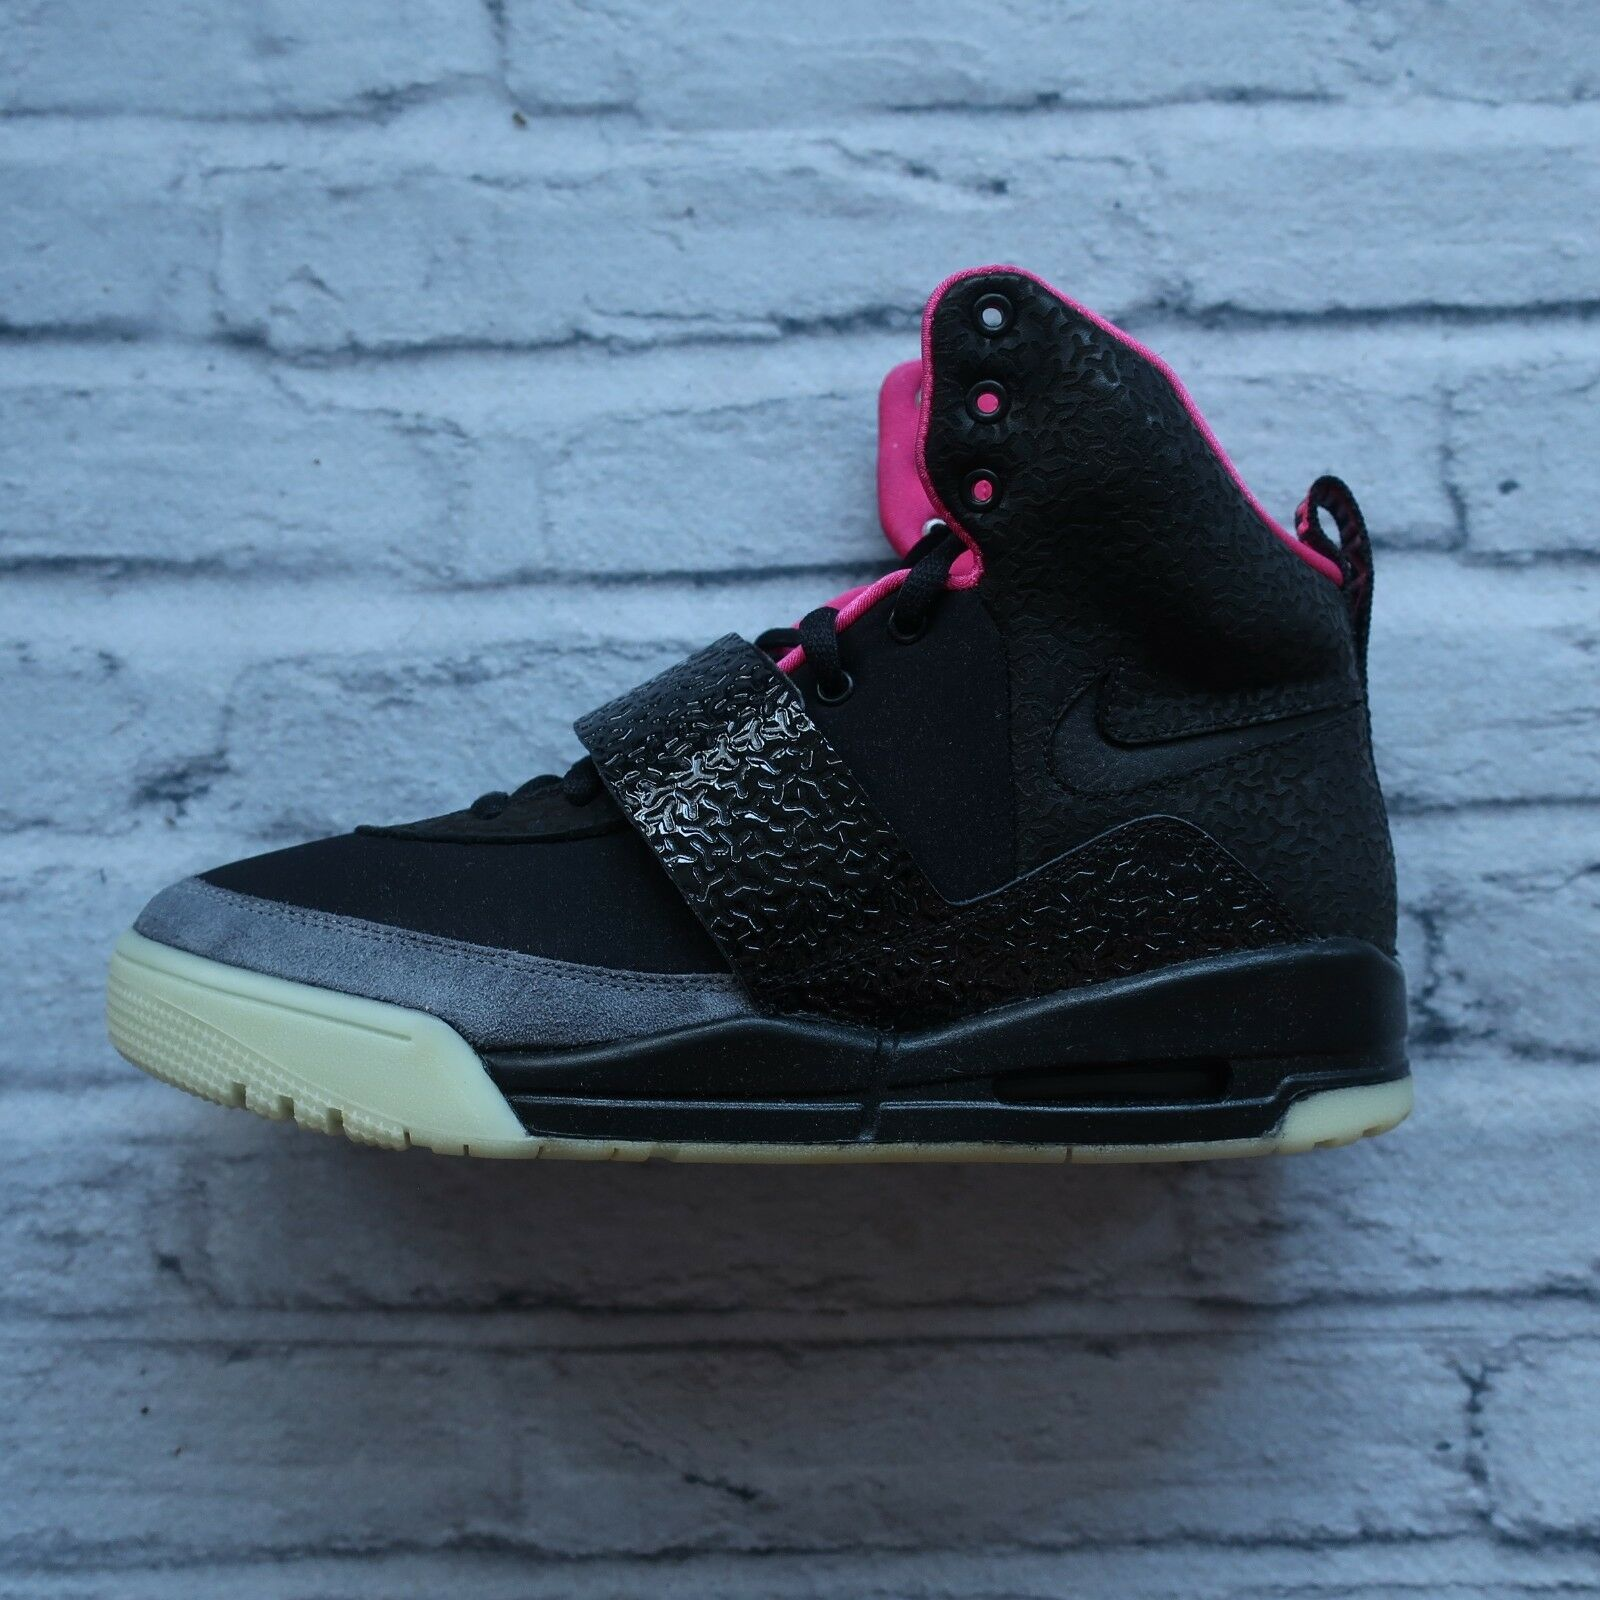 NEW 2009 Nike Air Yeezy 1 shoes 366164-003 Size 9.5 DS